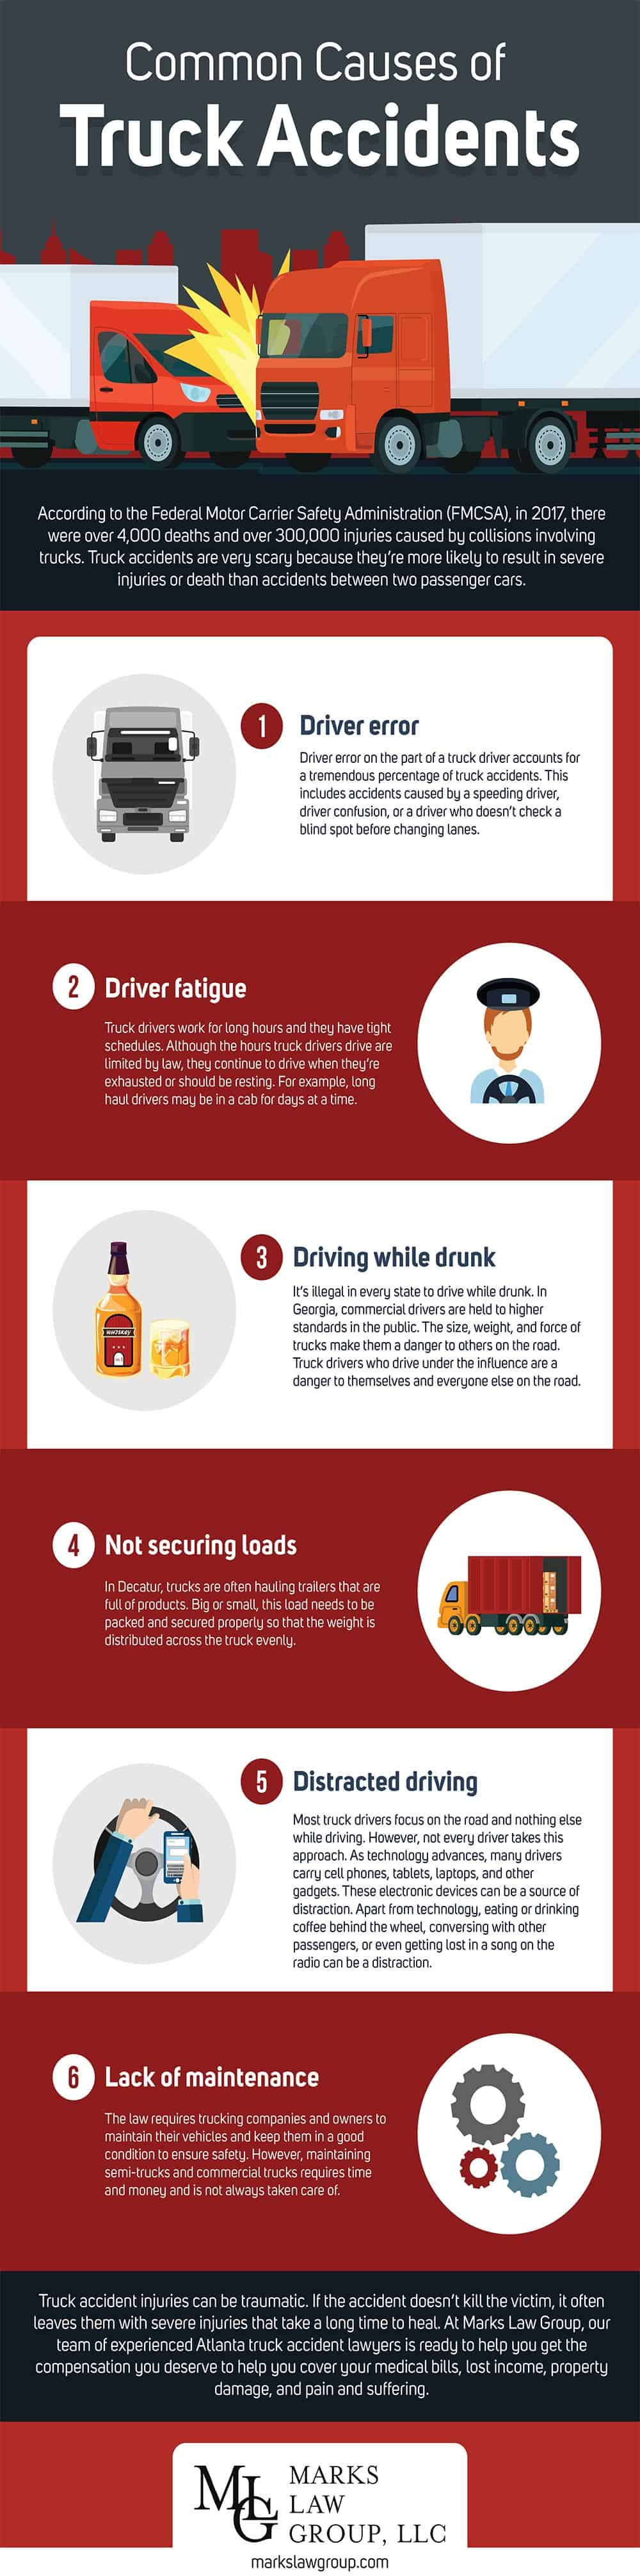 Truck Accidents - Infographic